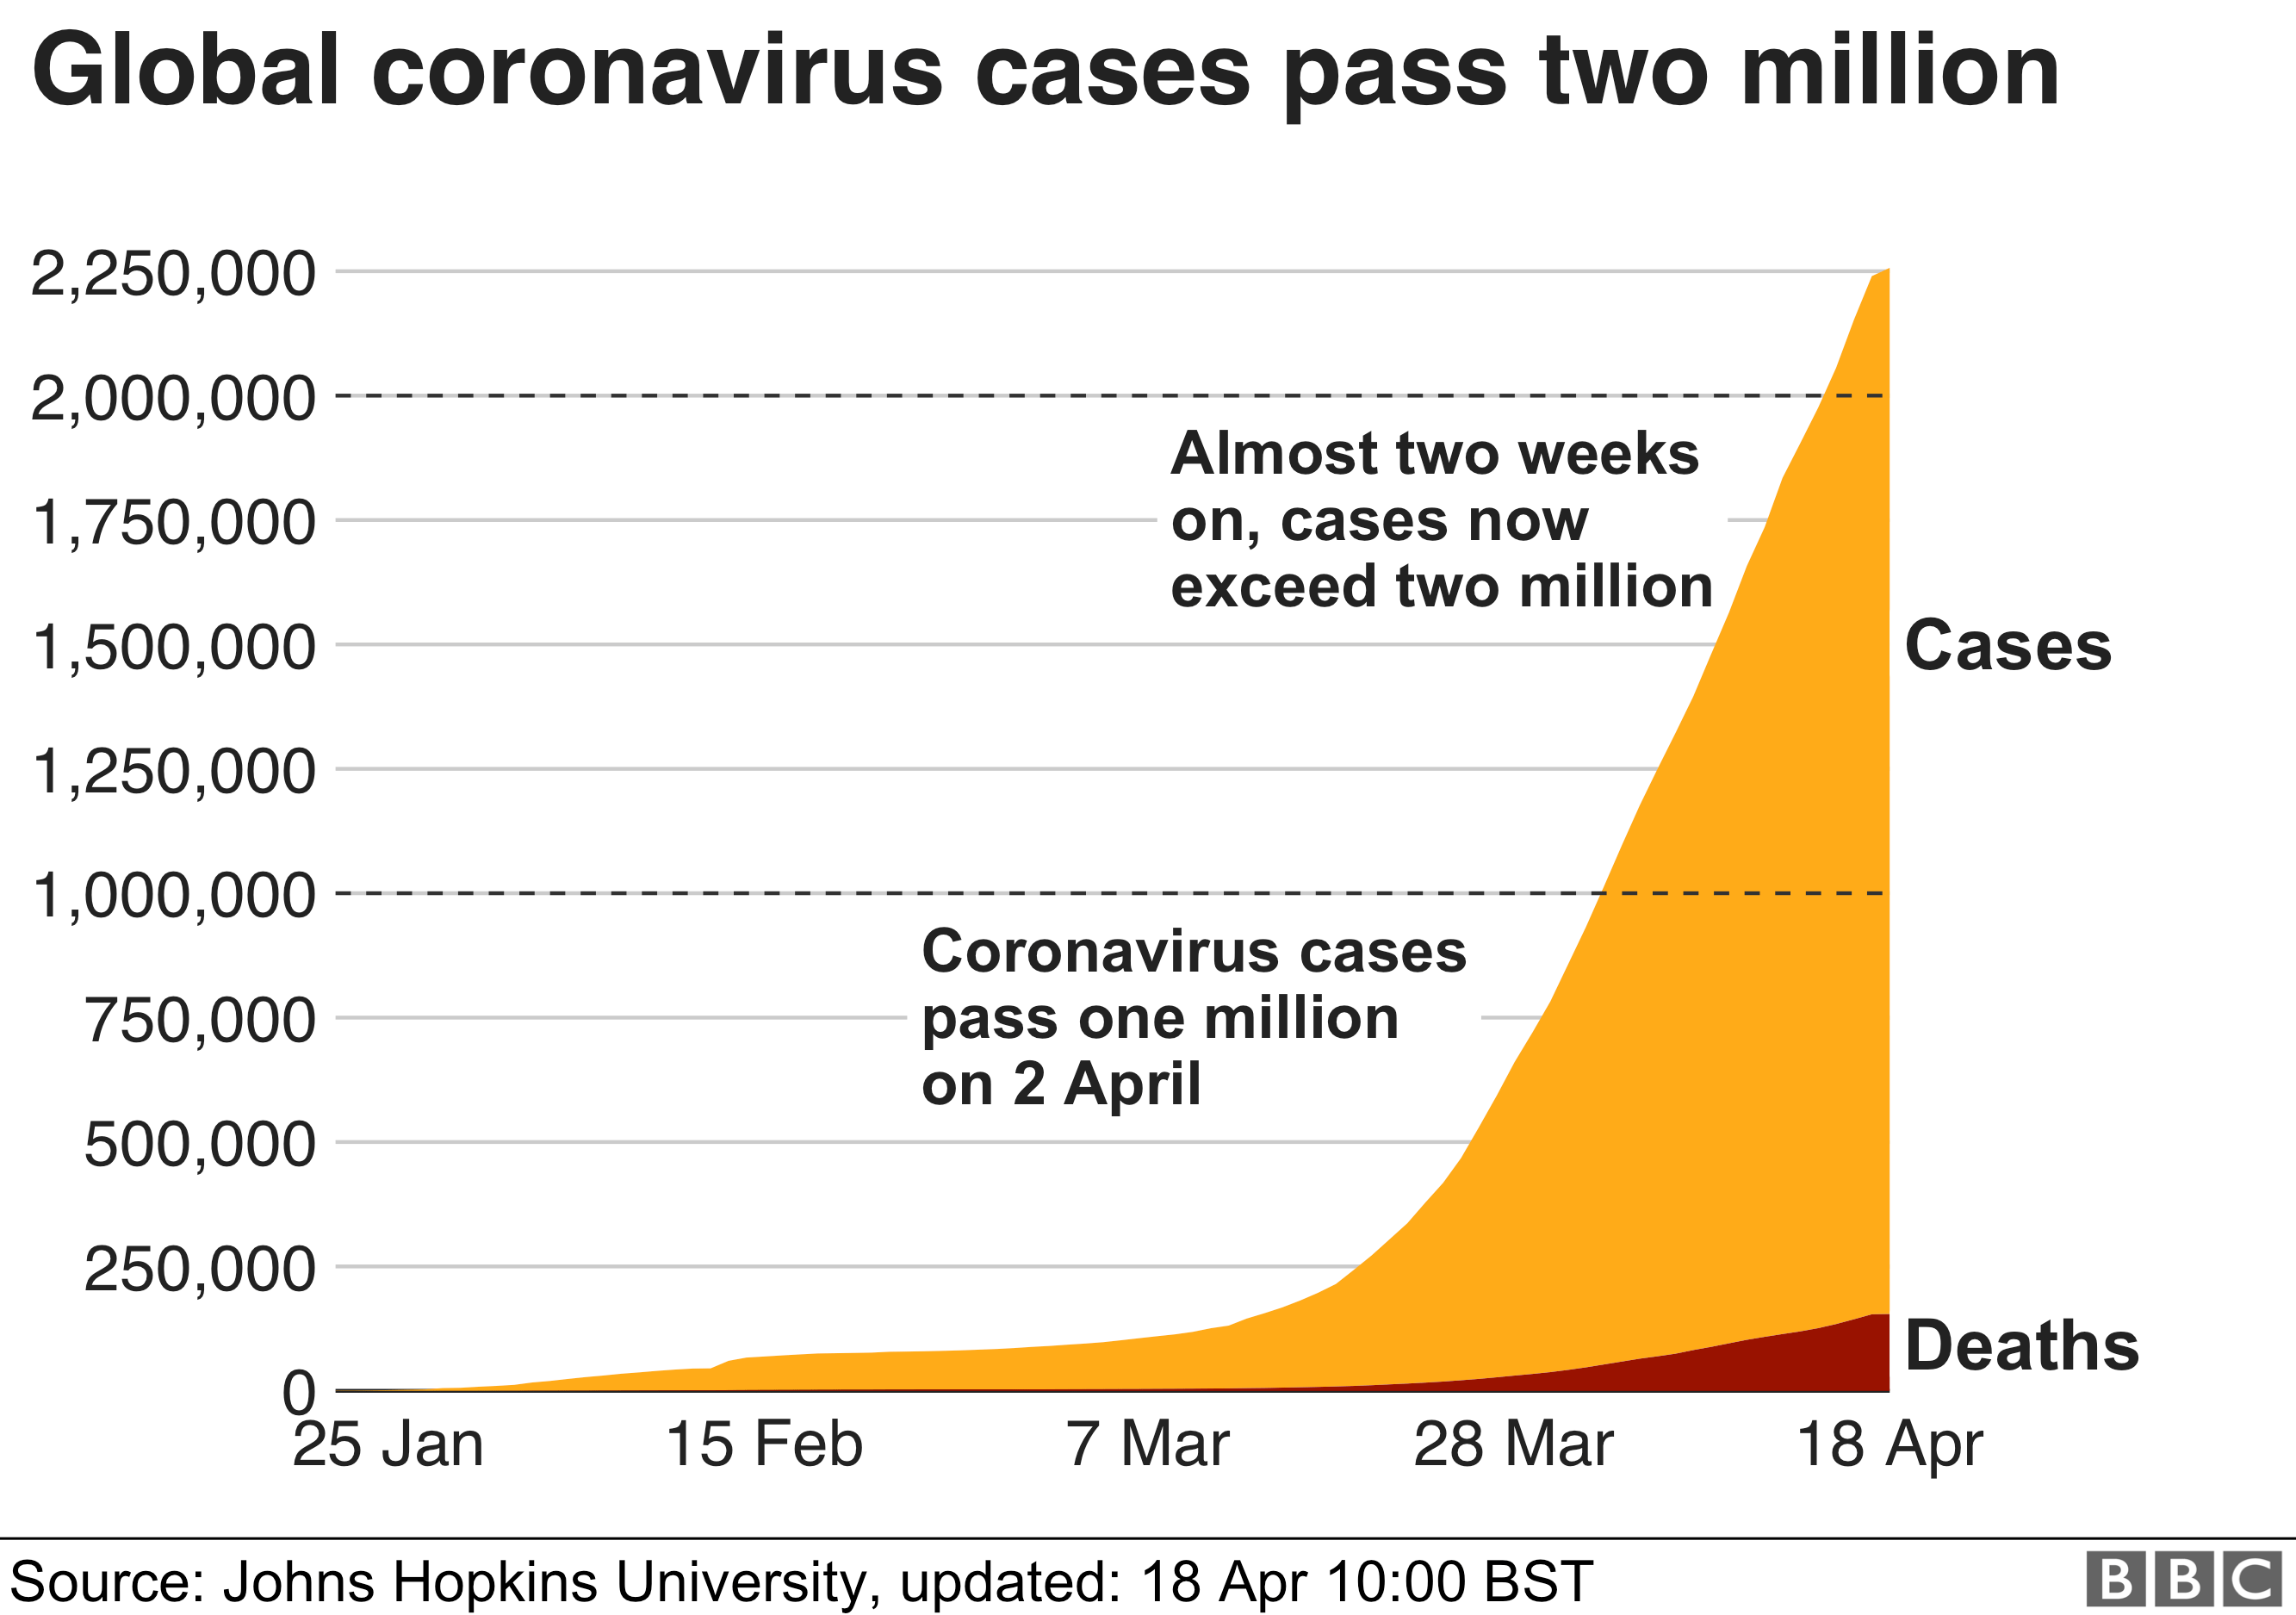 Graph showing the number of coronavirus cases worldwide